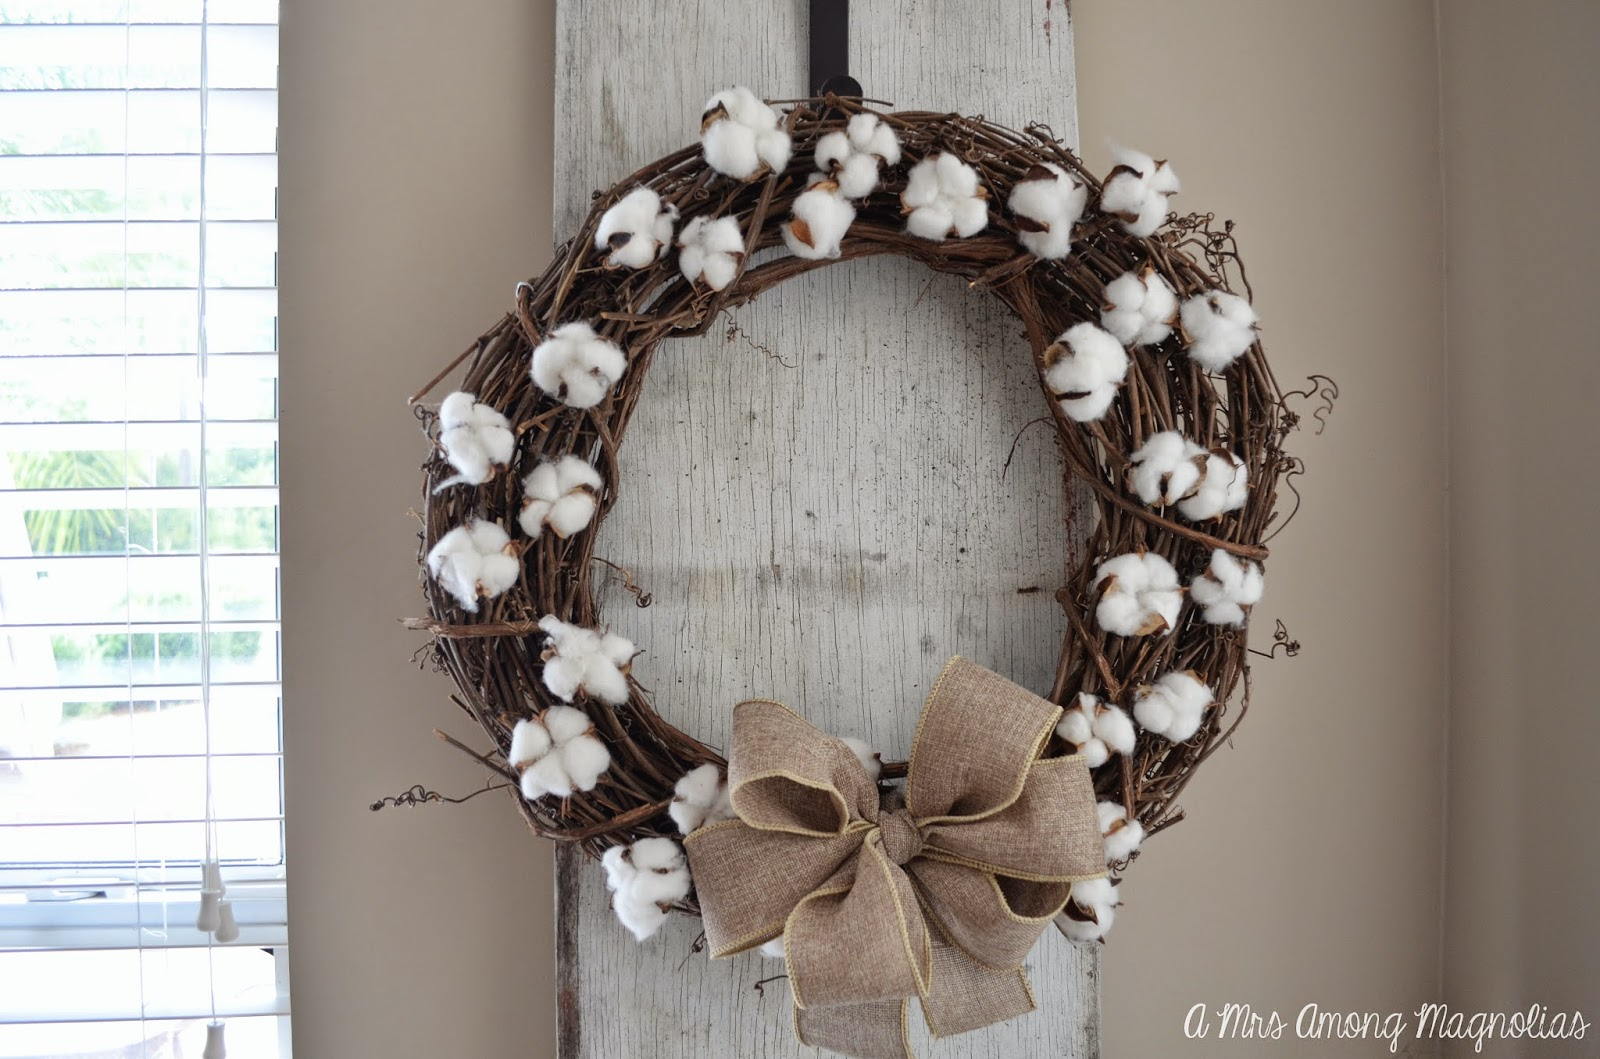 At The End You Will Have One Beautiful Cotton Wreath Perfect For Transition From Summer To Fall